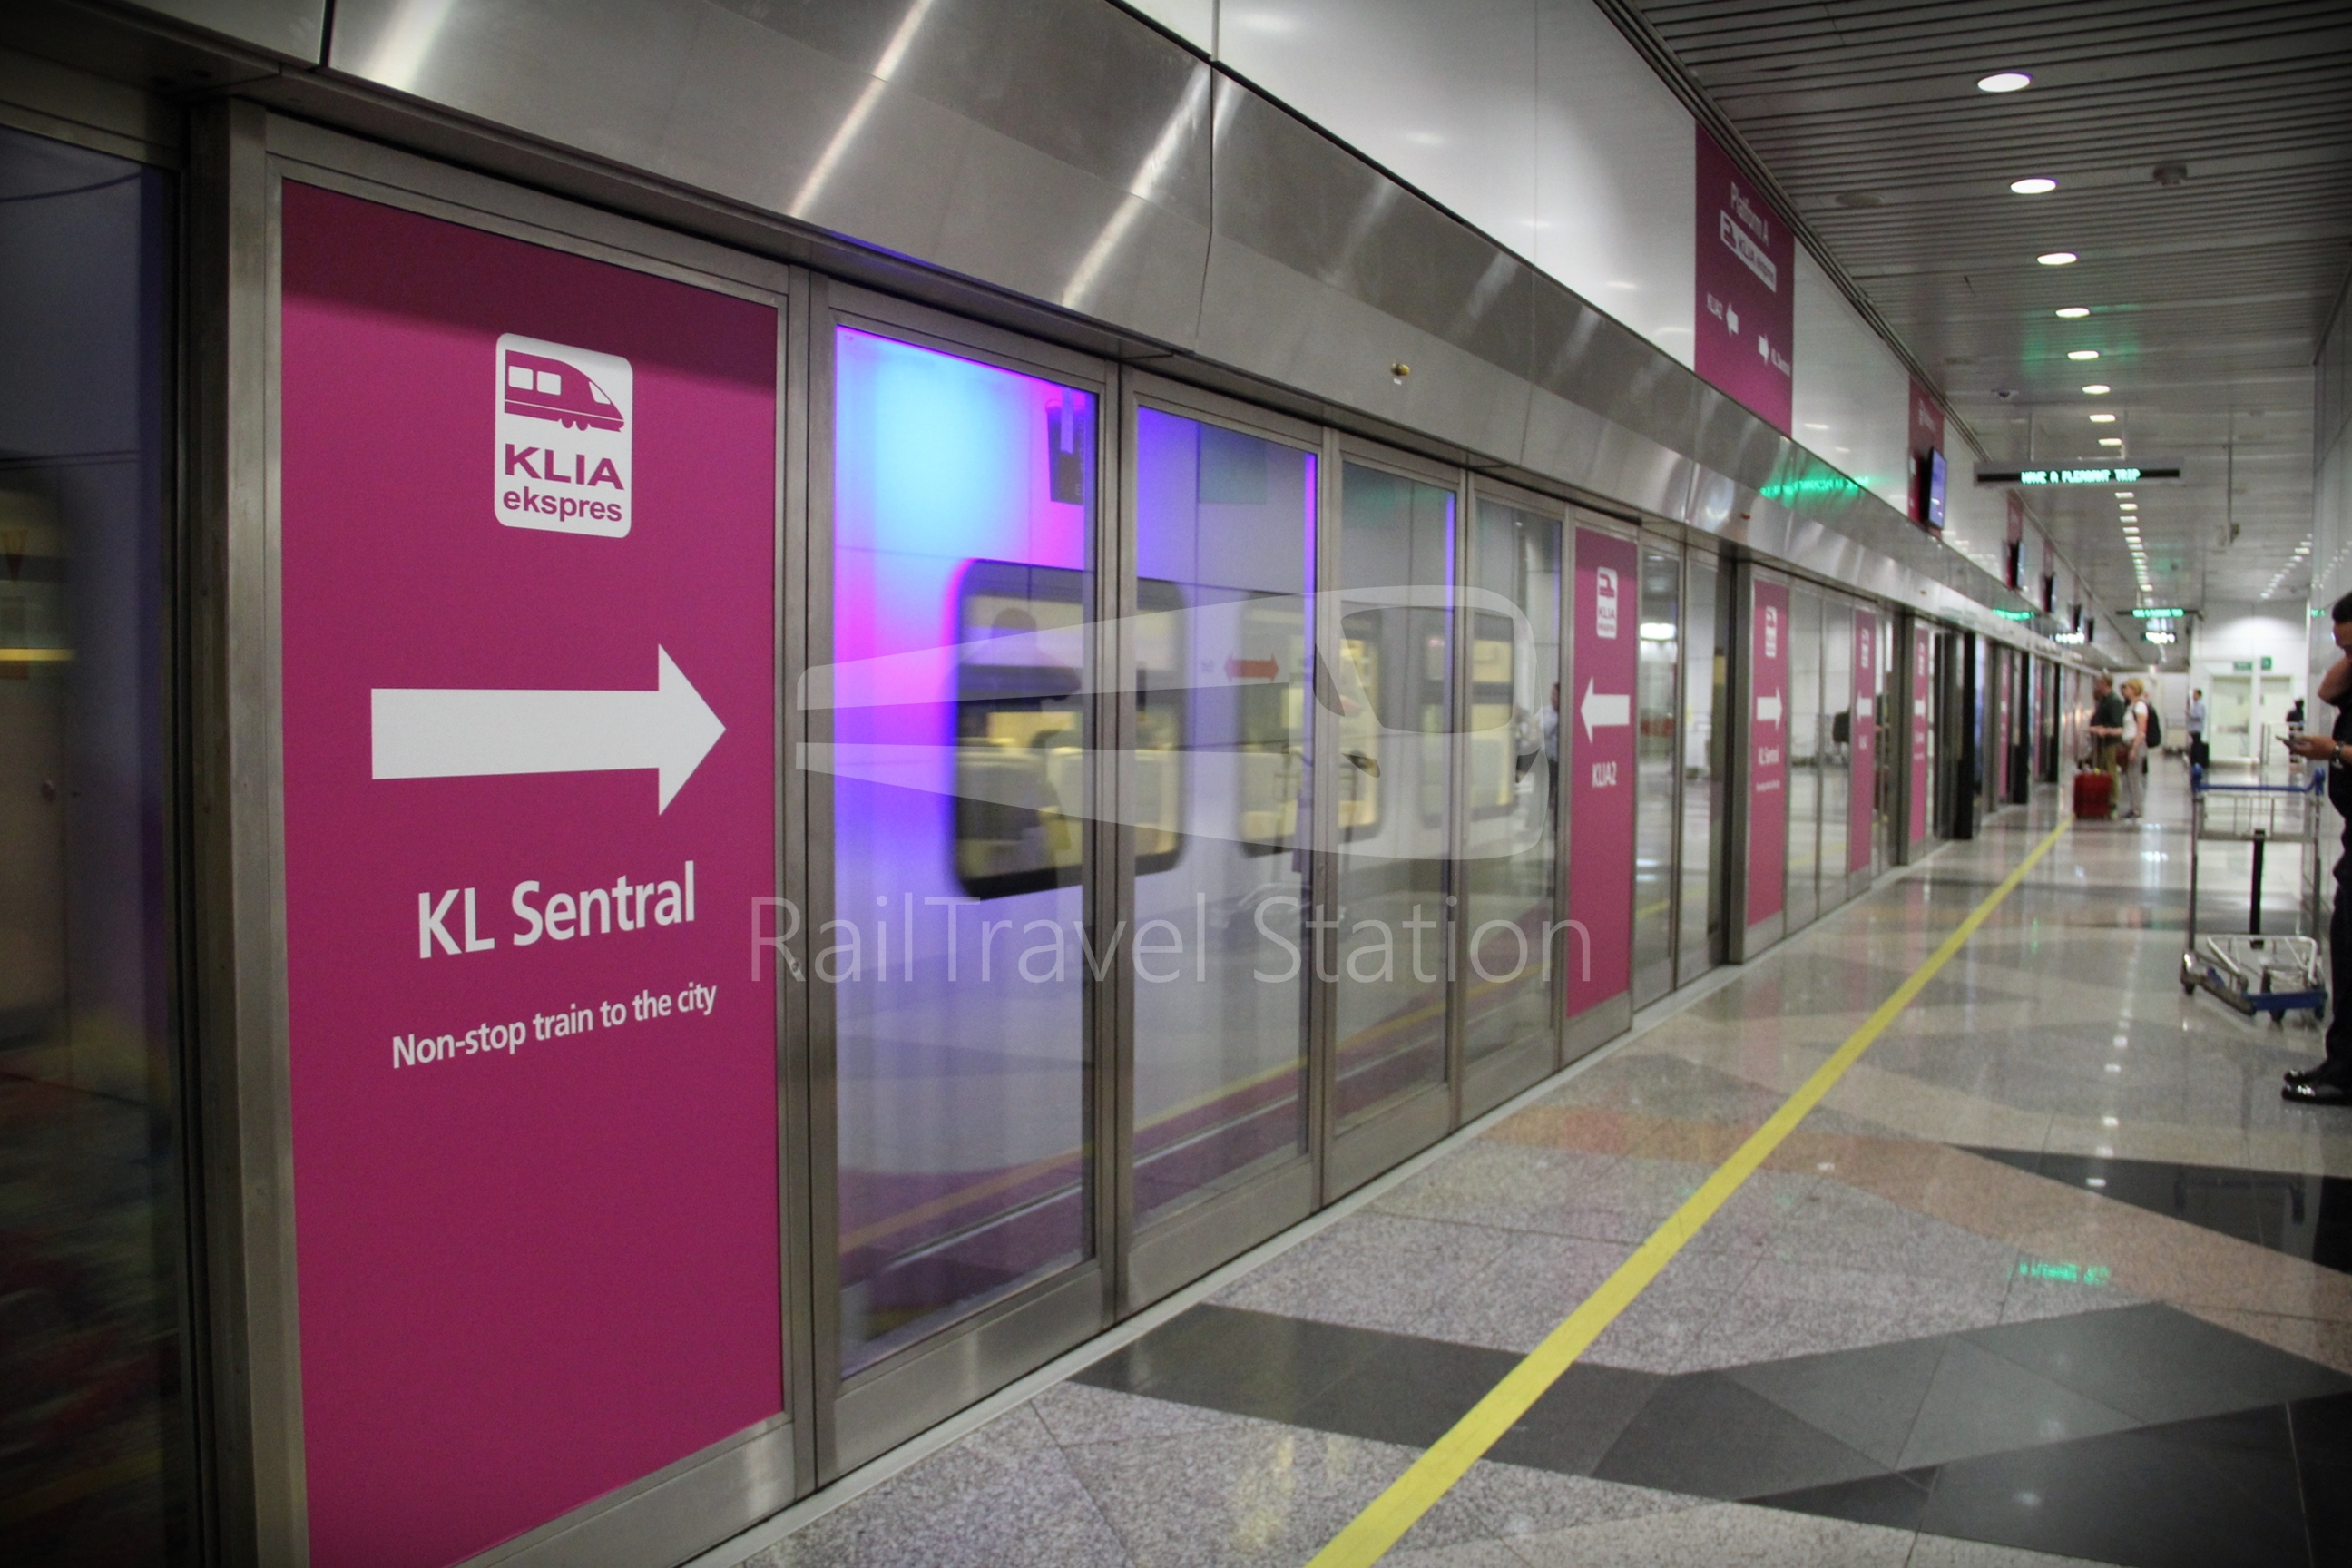 KLIA Ekspres: KLIA to KL Sentral by Train